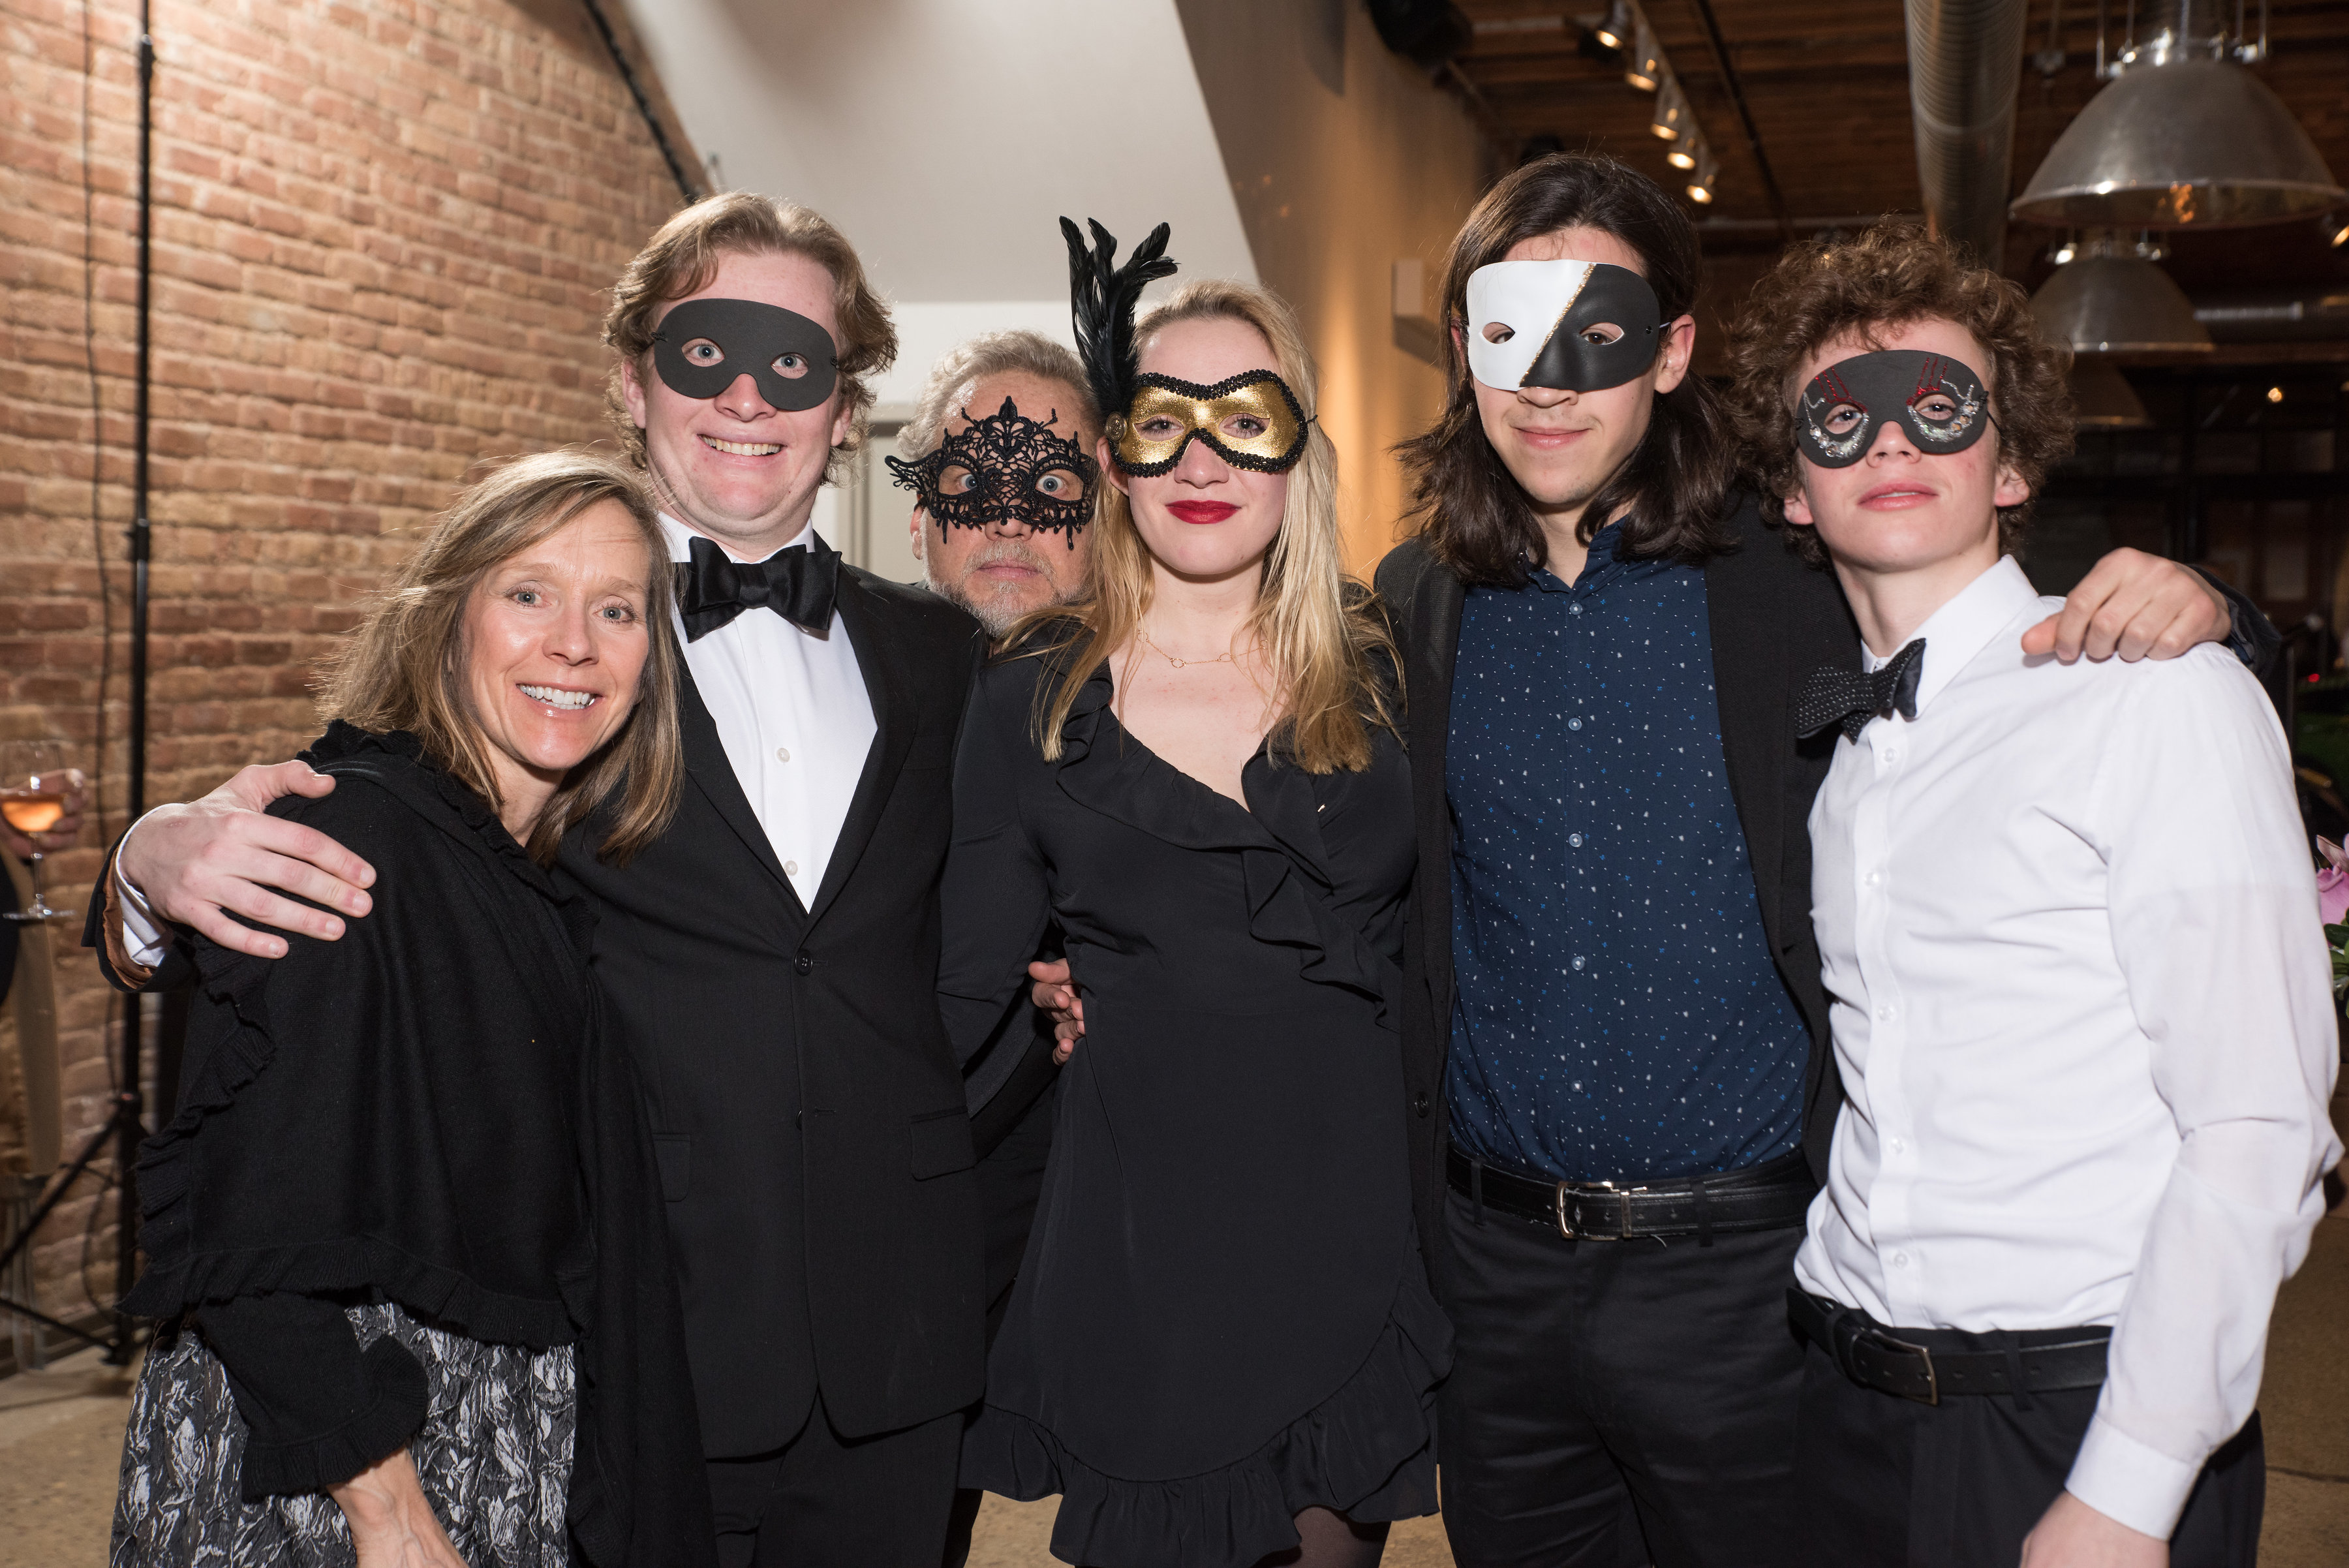 Masquerade 50th Birthday - Andre LaCour Photography